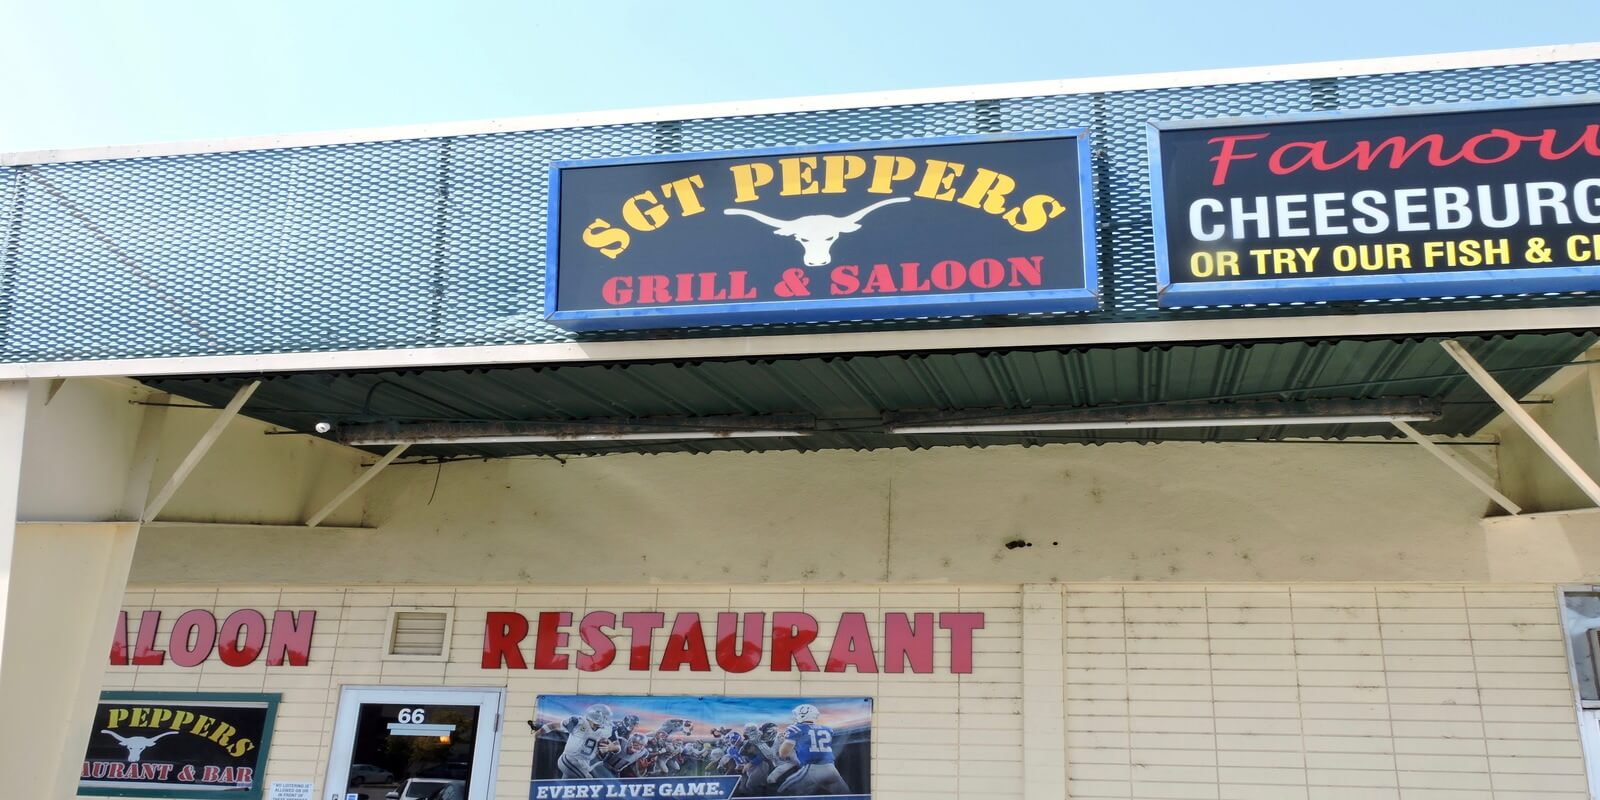 Image of Sgt Peppers Grill & Saloon